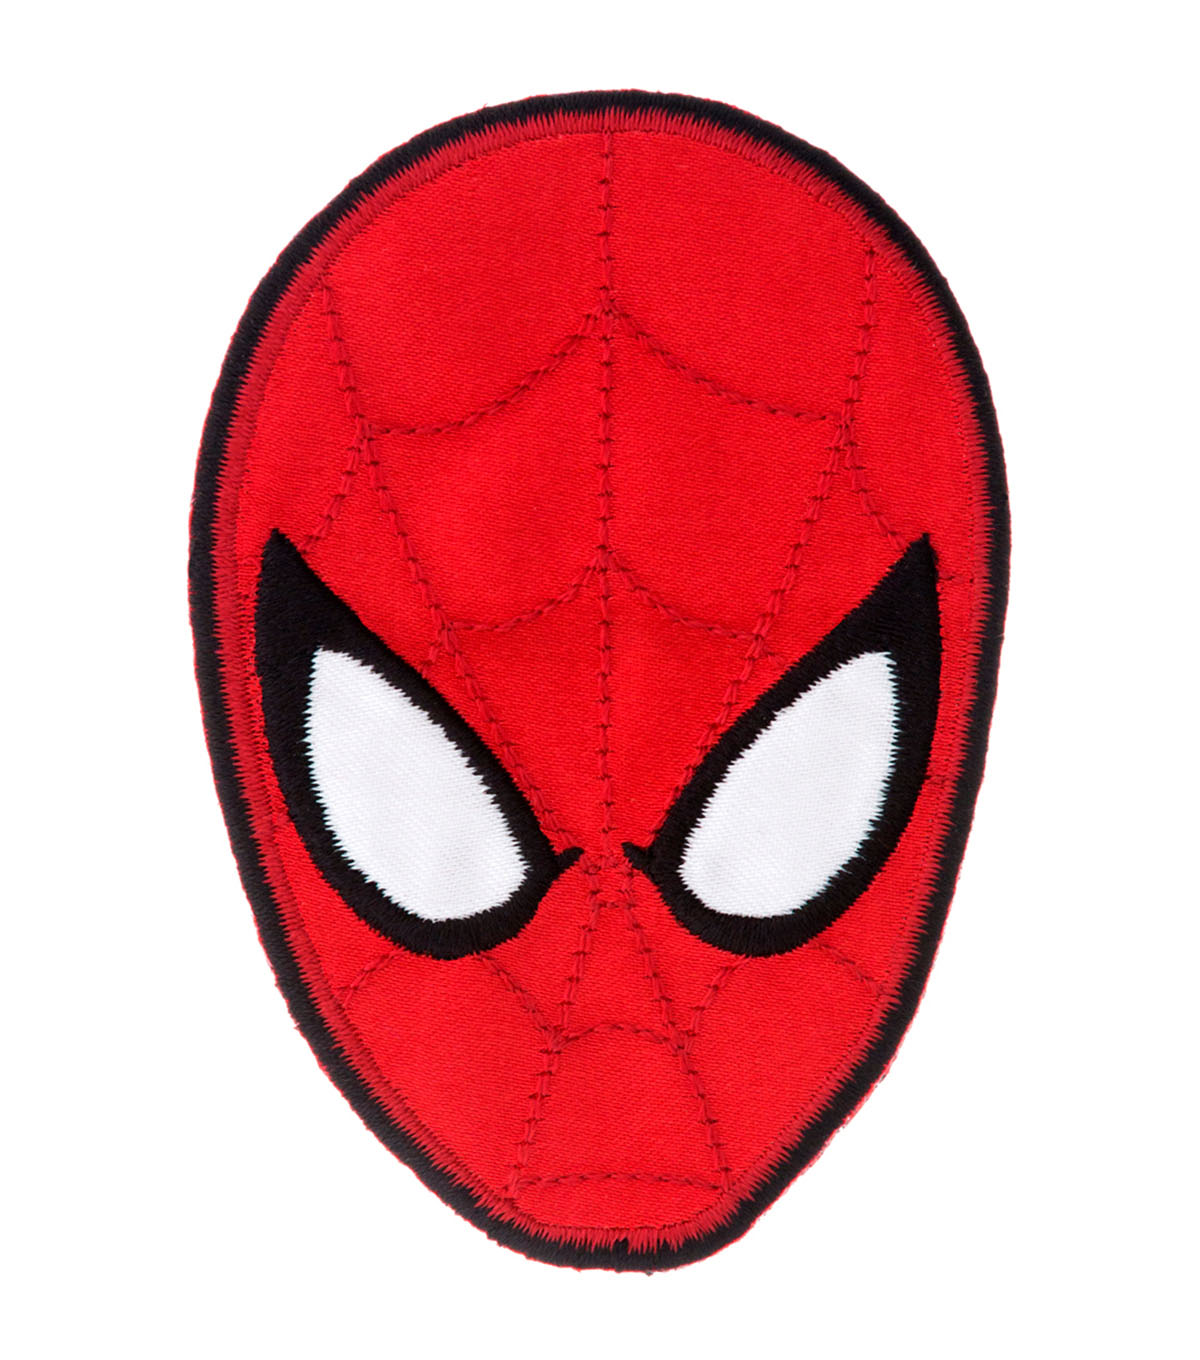 Marvel Comics Spiderman Iron-On Applique